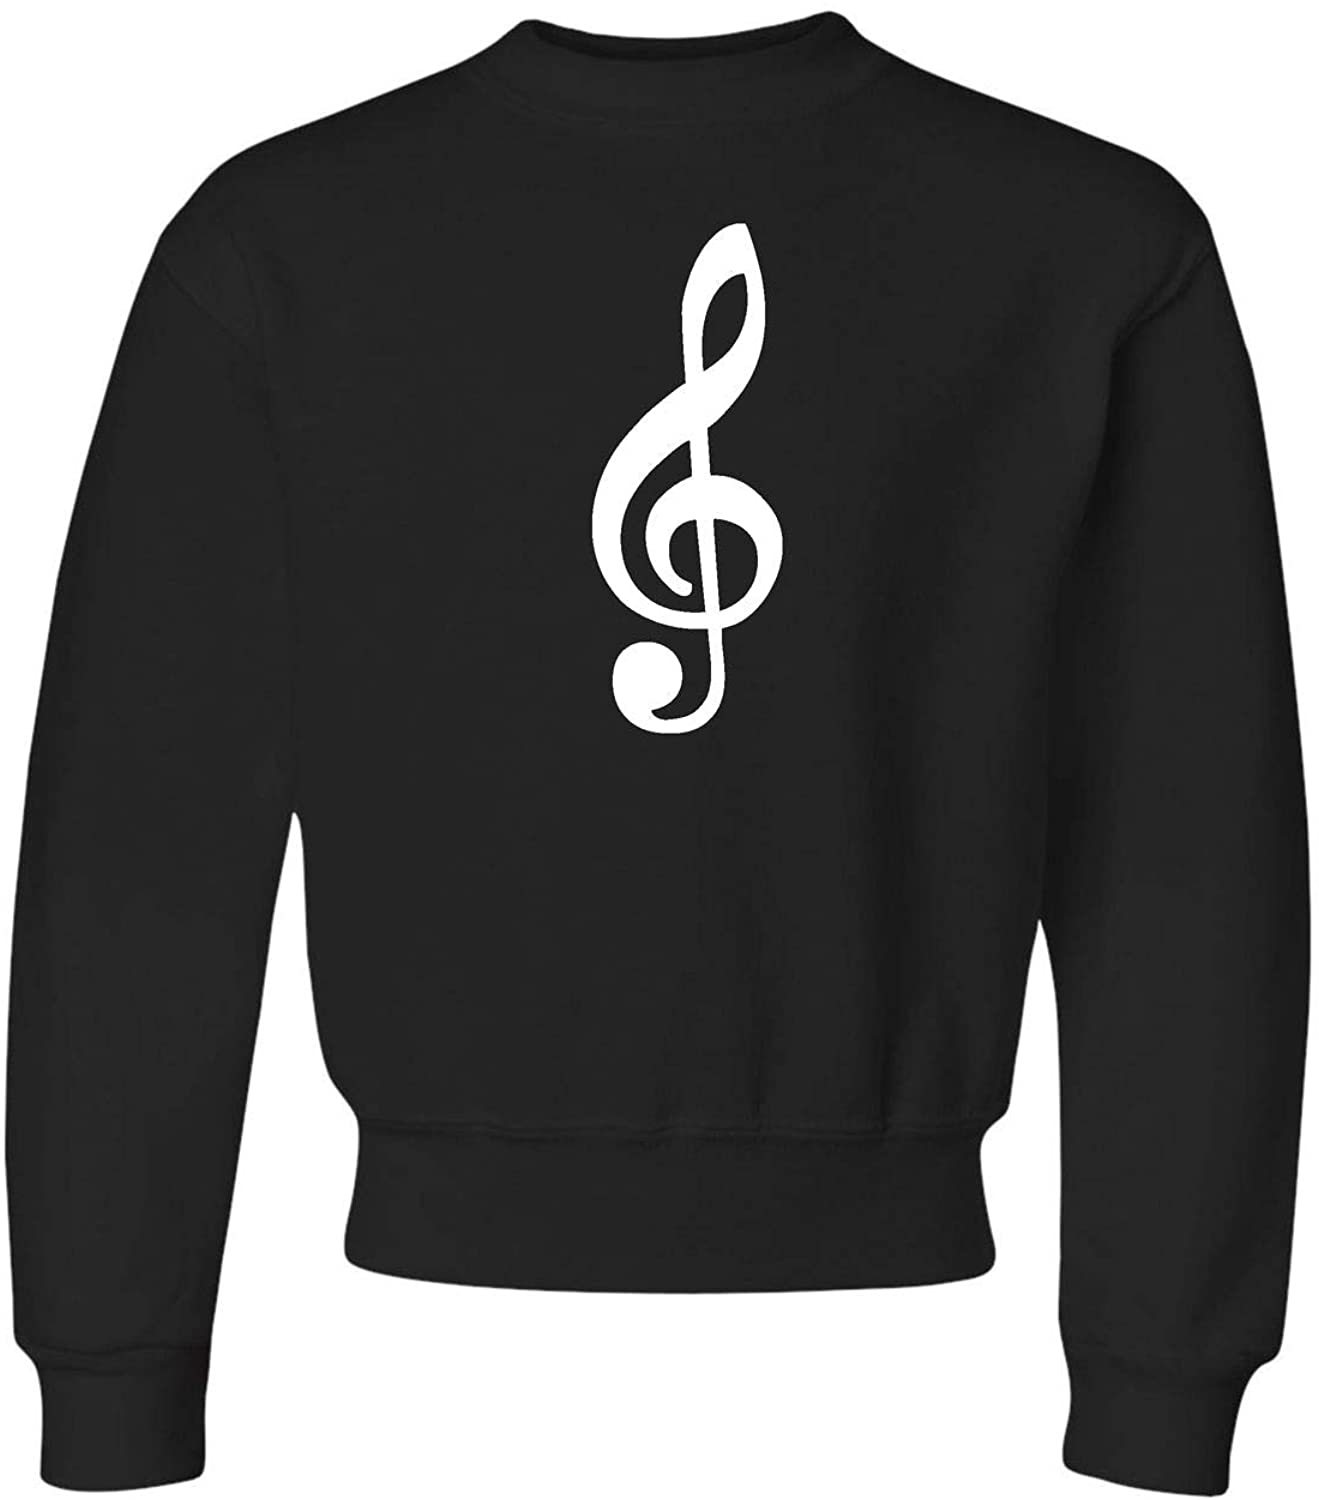 Go All Out Youth Giant Treble Clef Music Lovers Crewneck Sweatshirt